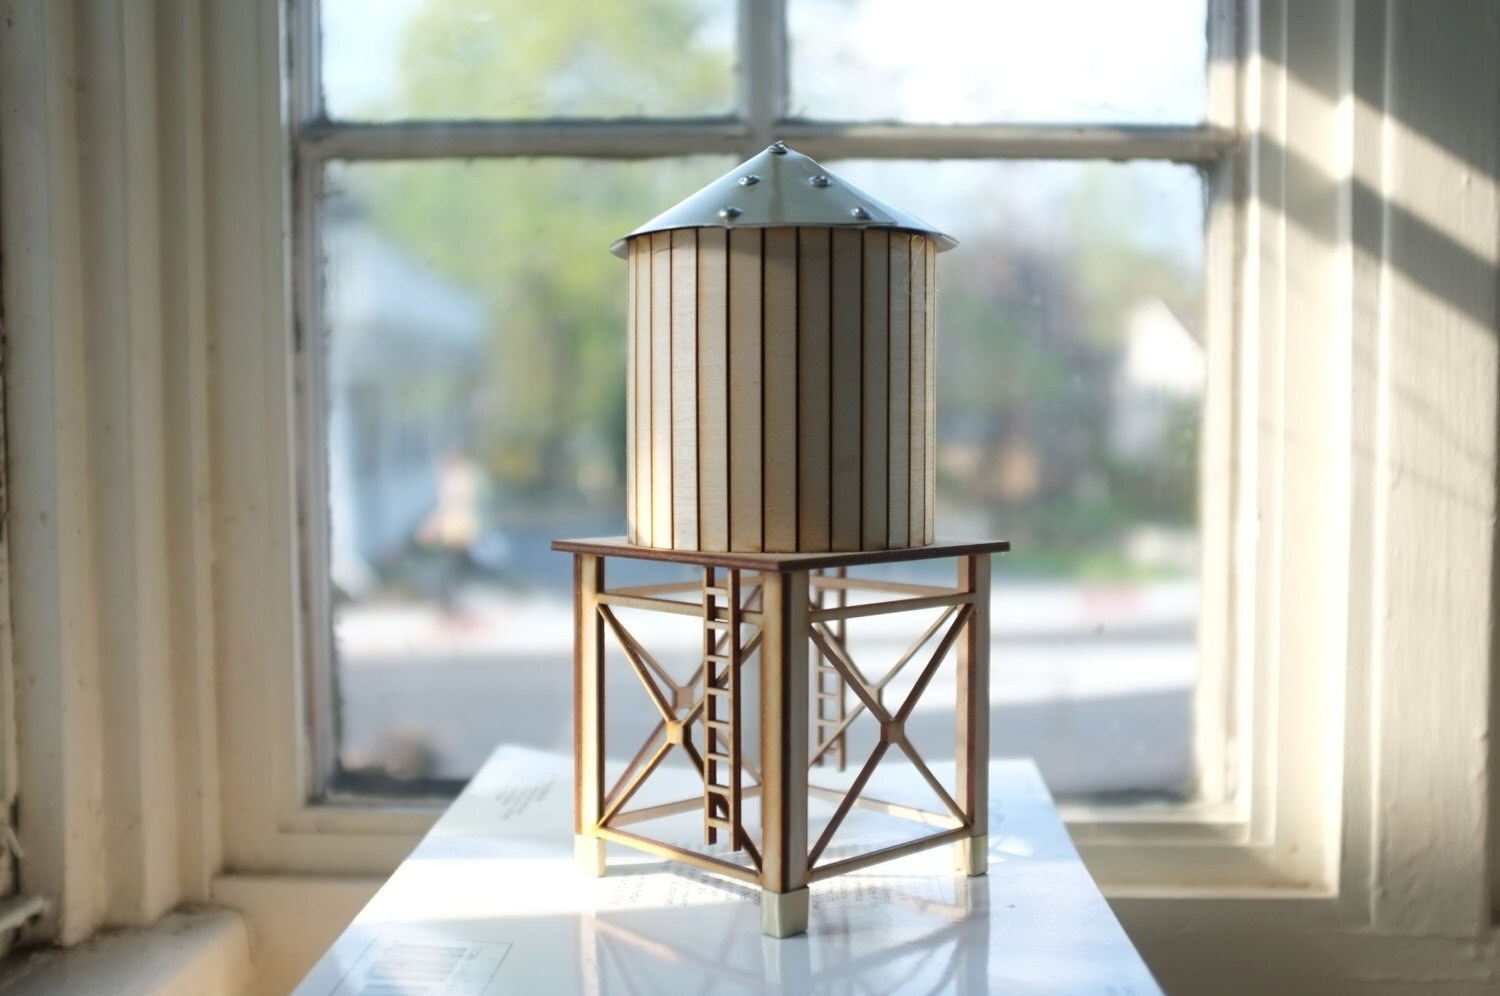 New nyc water tower 2 tabletop wooden water tower gold for Roof accents